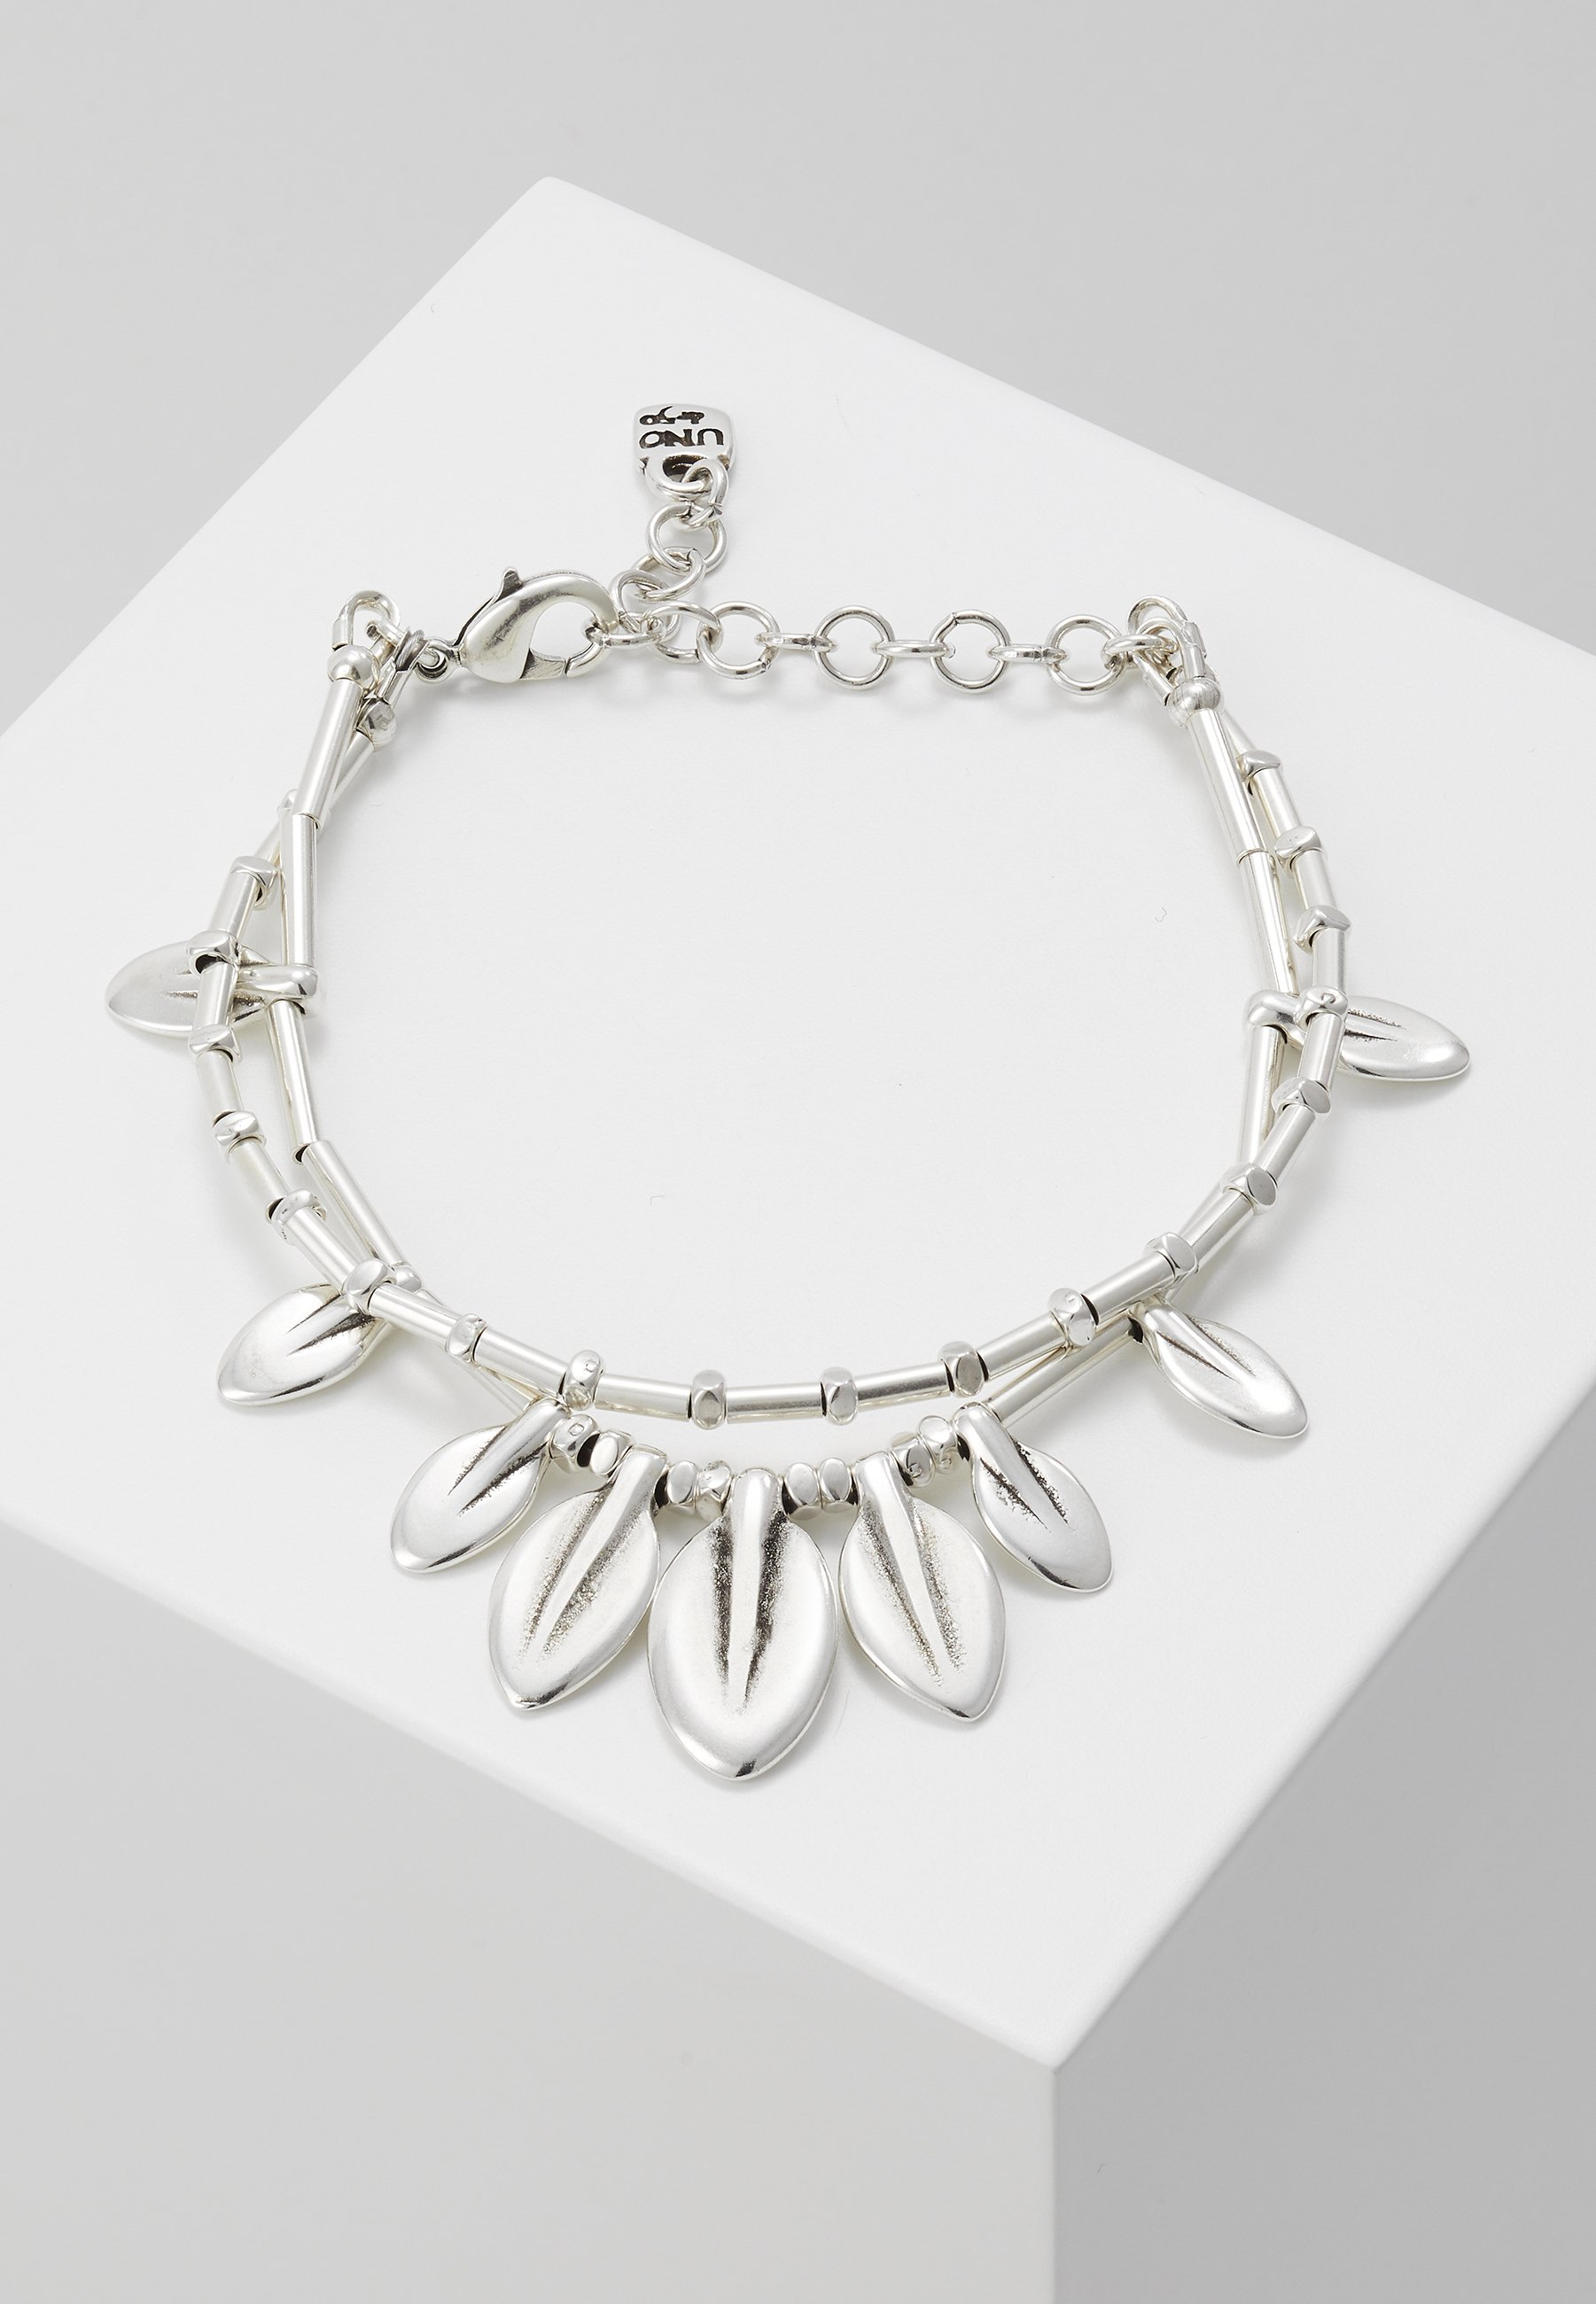 Clearance Designer Accessories UNOde50 MY NATURE FEATHER BRACELET Bracelet silver-coloured rjVODpiwi yfI4mWiy6